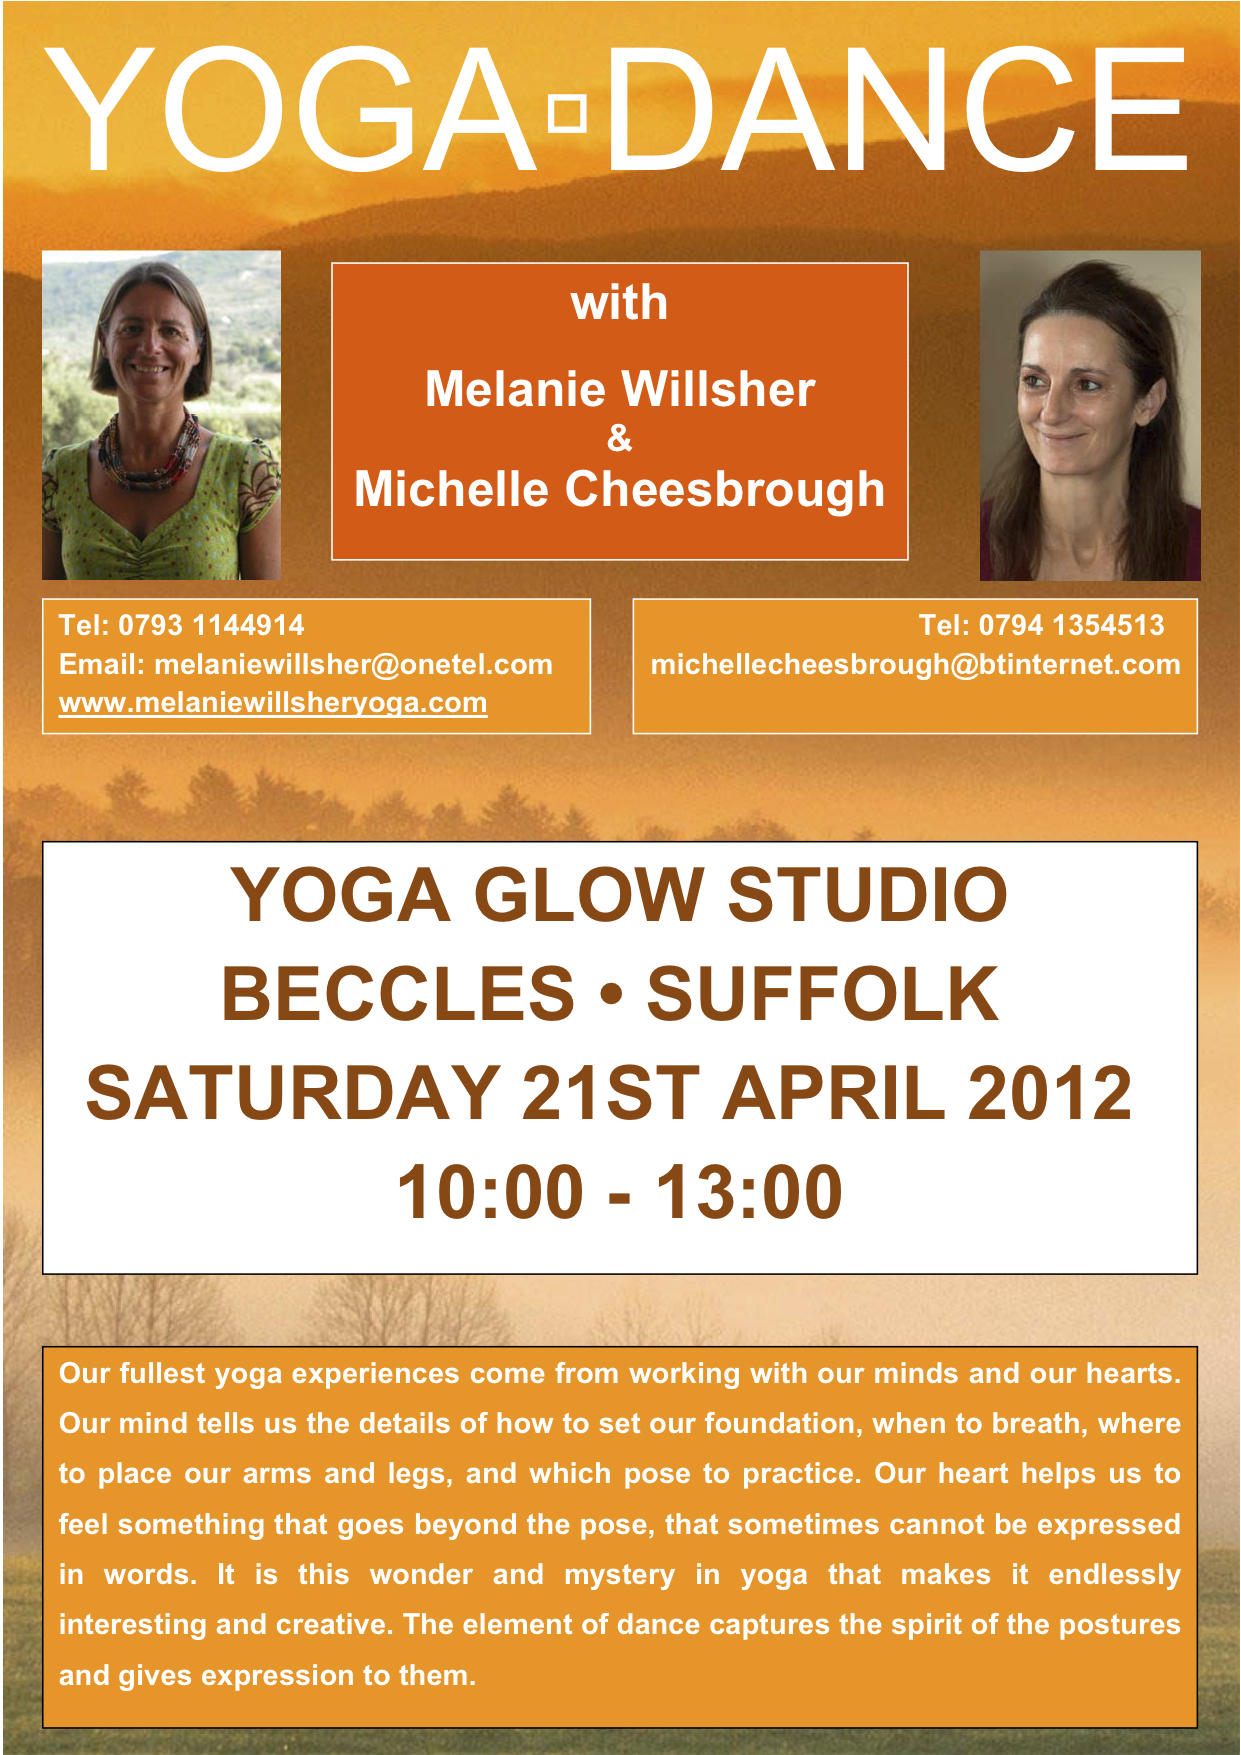 Yoga Dance at Yoga Glow Studio Beccles